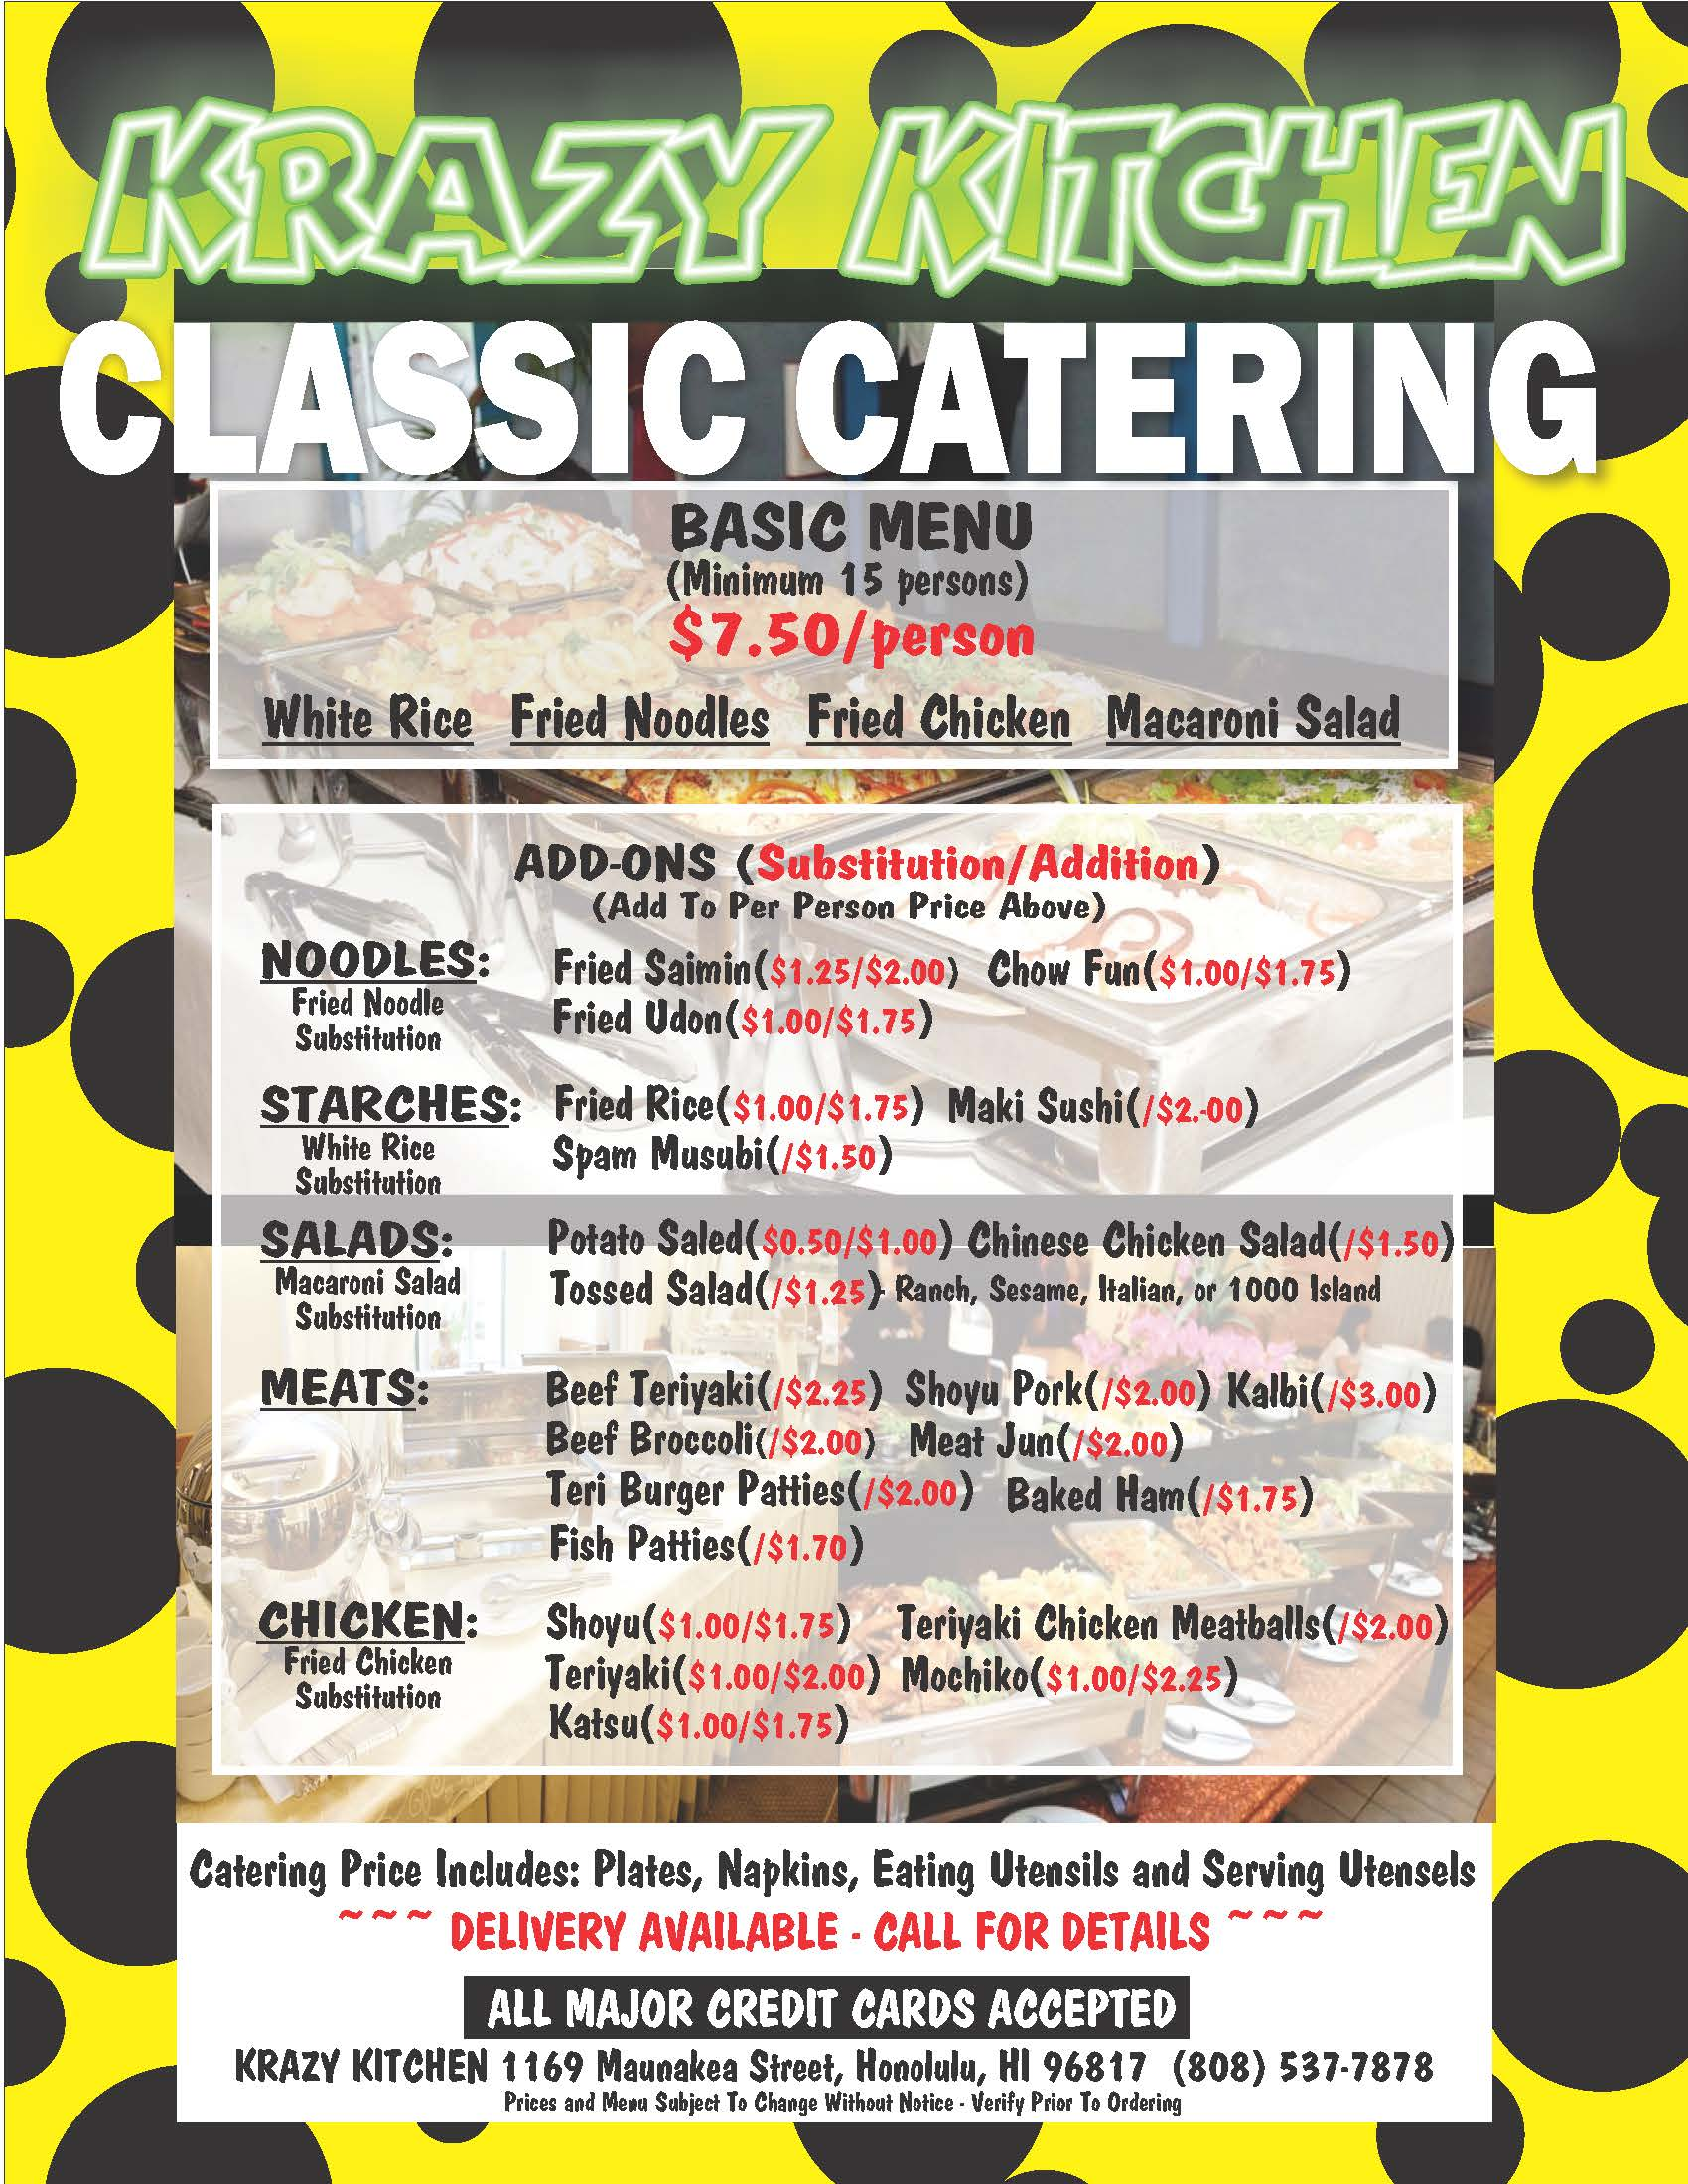 Krazy Kitchen Menu Classic Catering